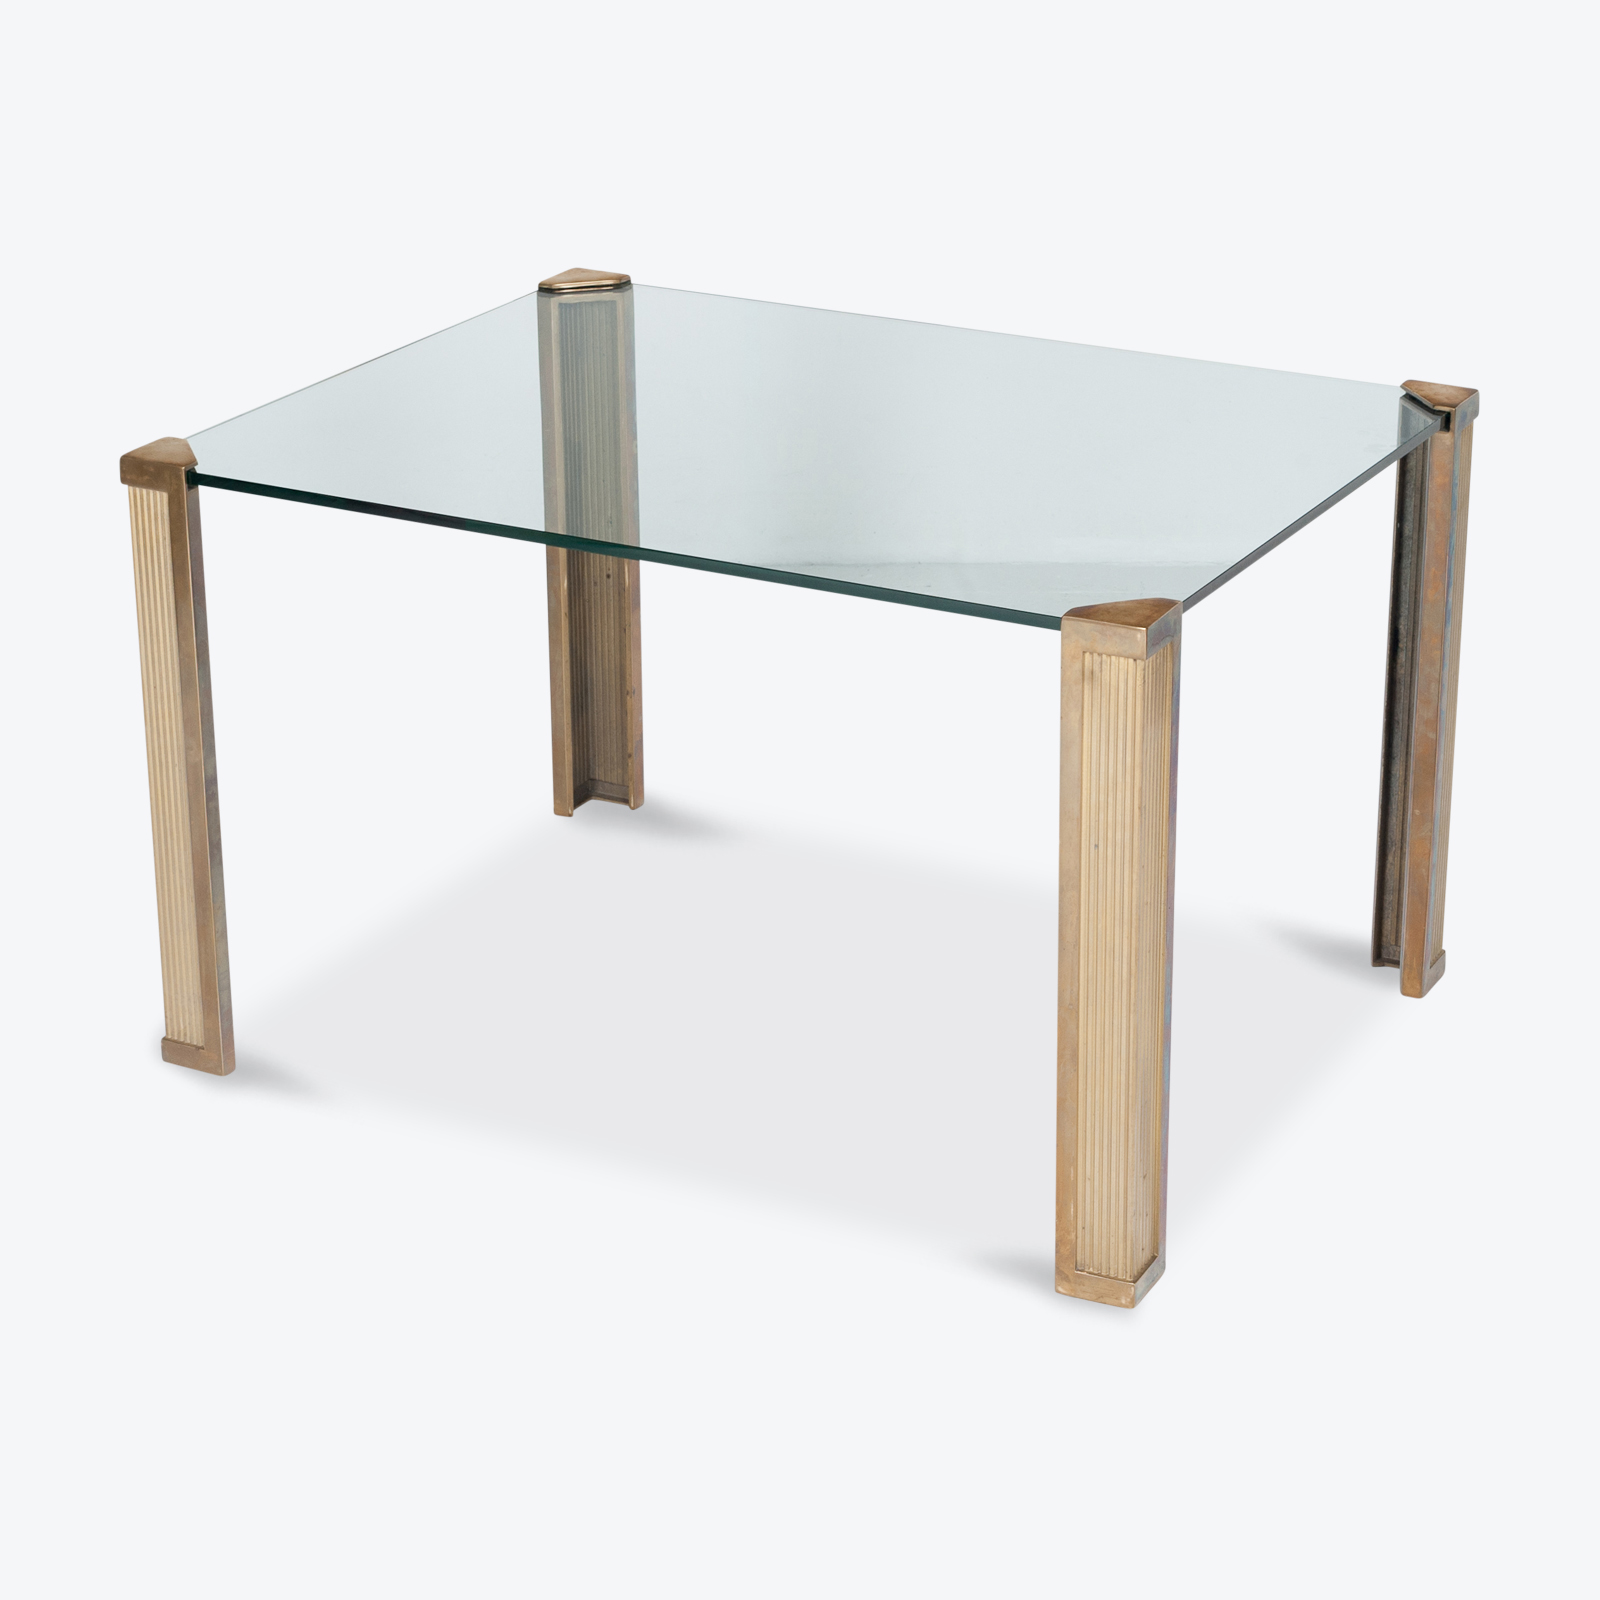 Dining Table With Solid Brass Cast Legs And Glass Top By Peter Ghyczy, 1970s, The Netherlands Hero